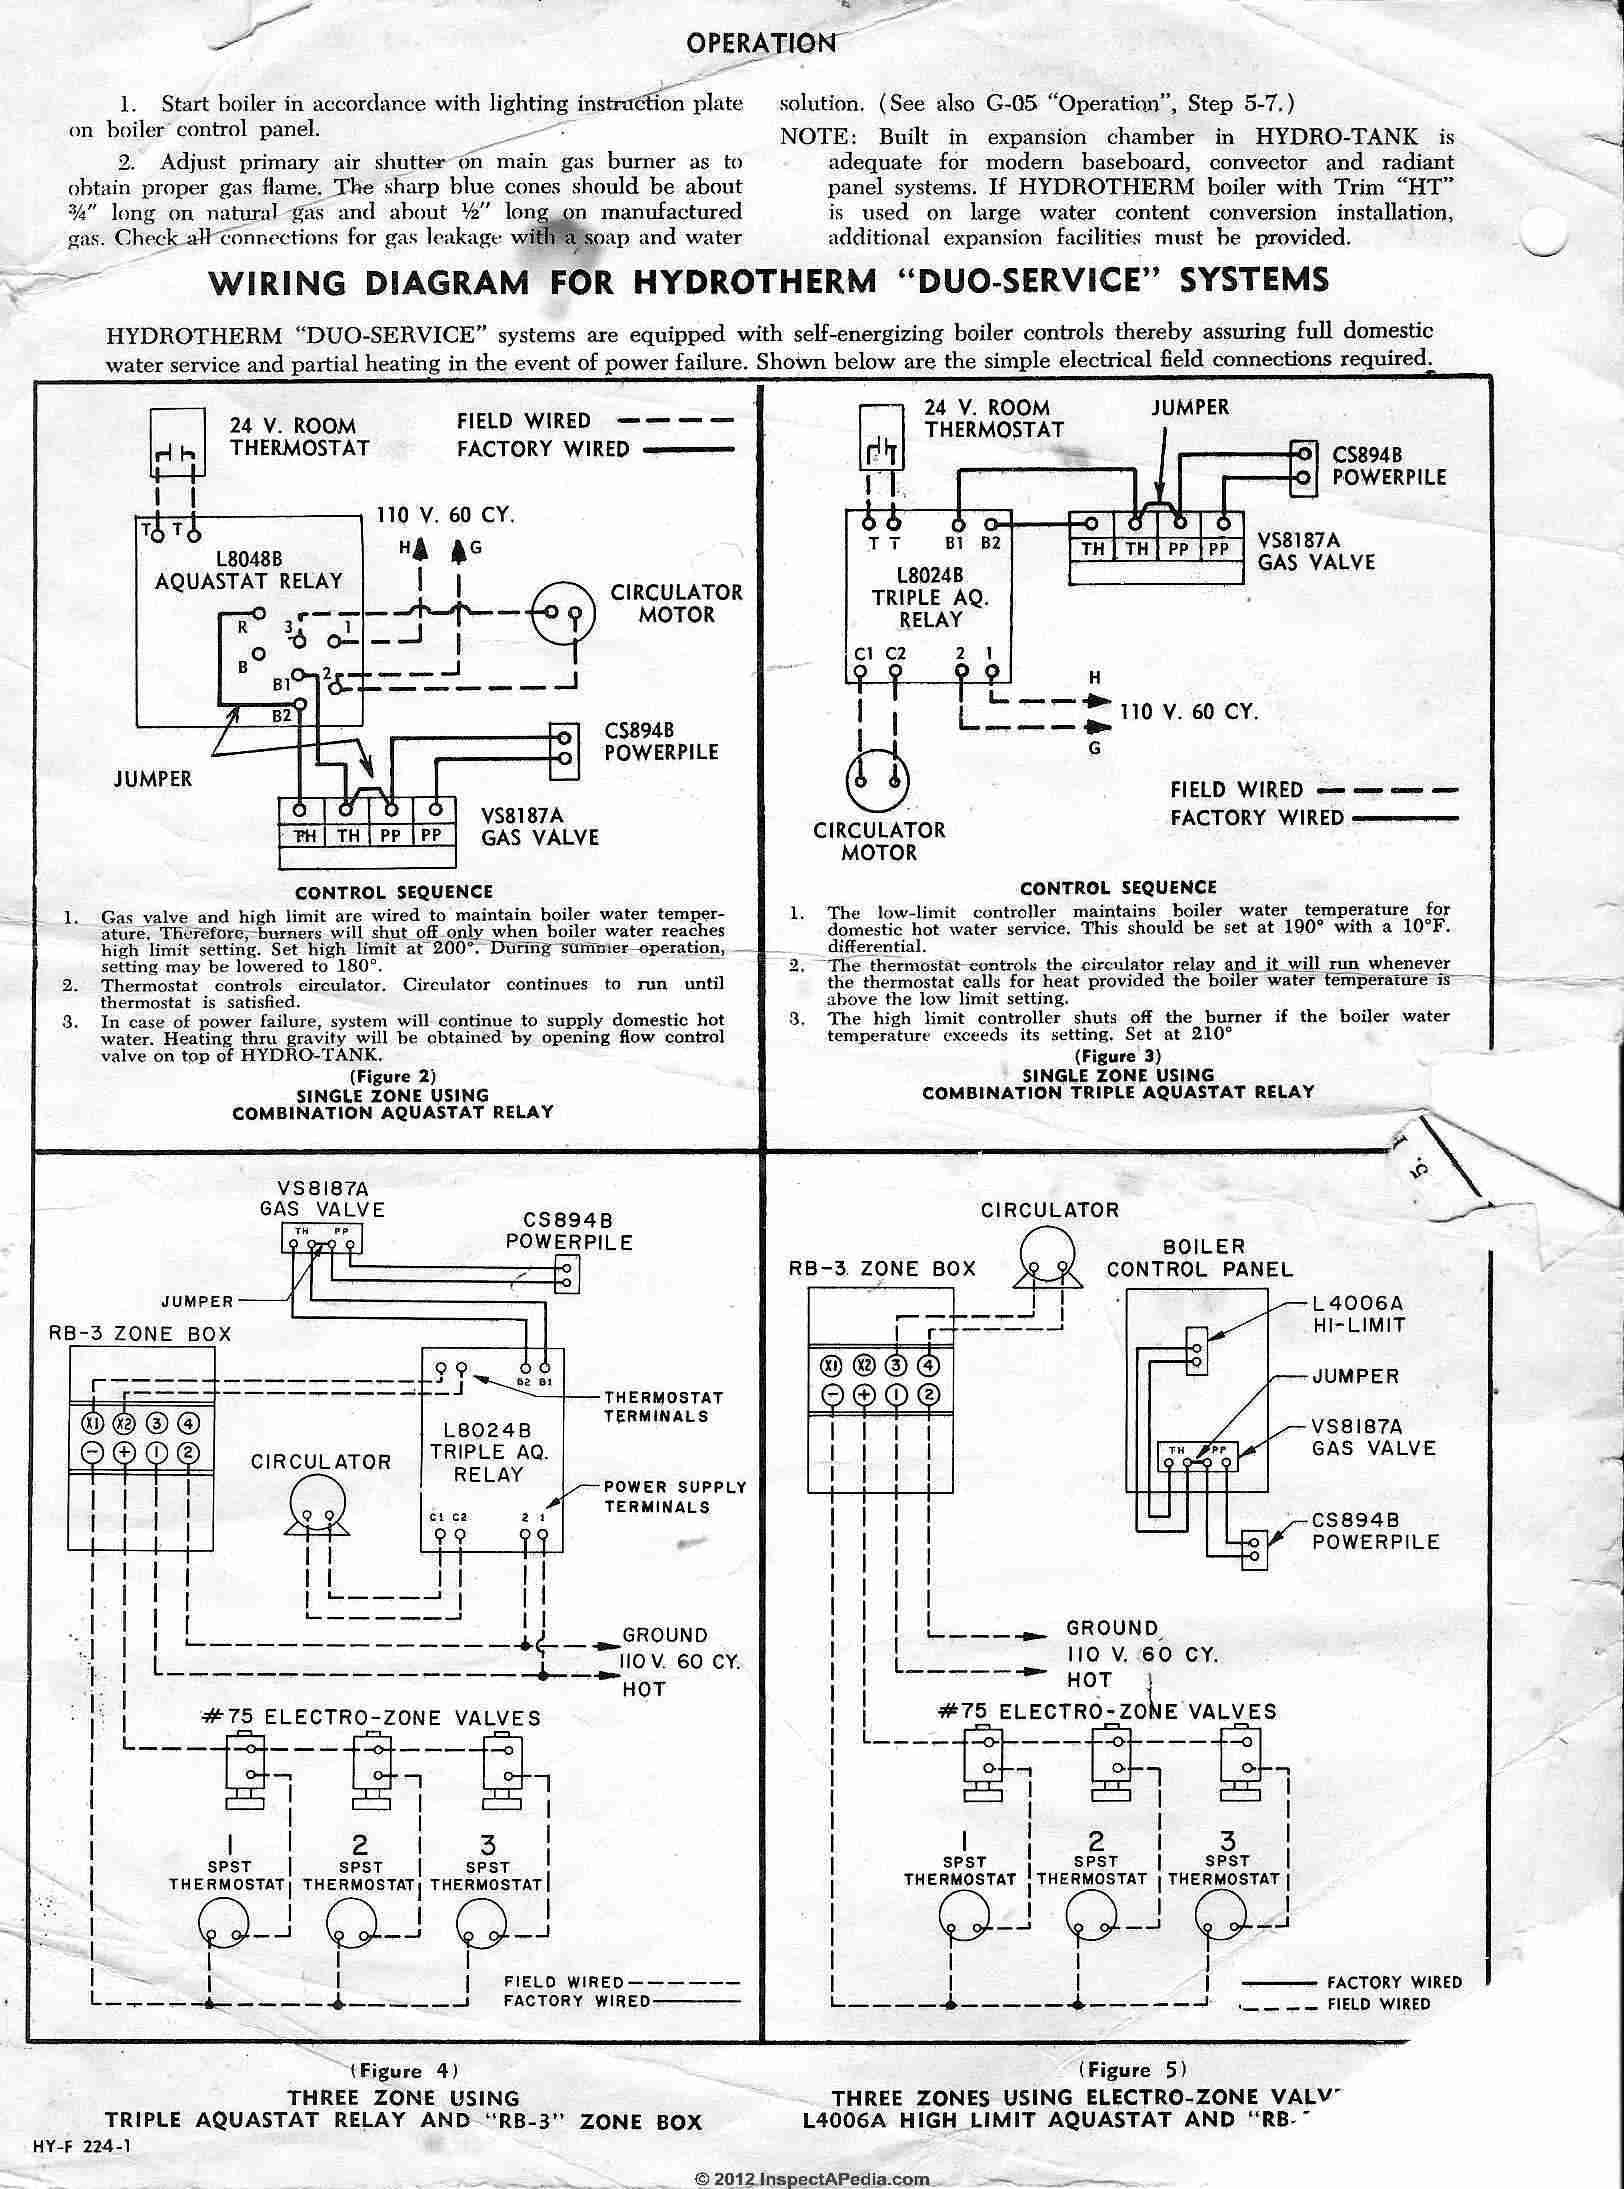 Honeywell L8024B aquastat wiring instructions  sc 1 st  InspectAPedia.com : burnham steam boiler wiring diagram - yogabreezes.com